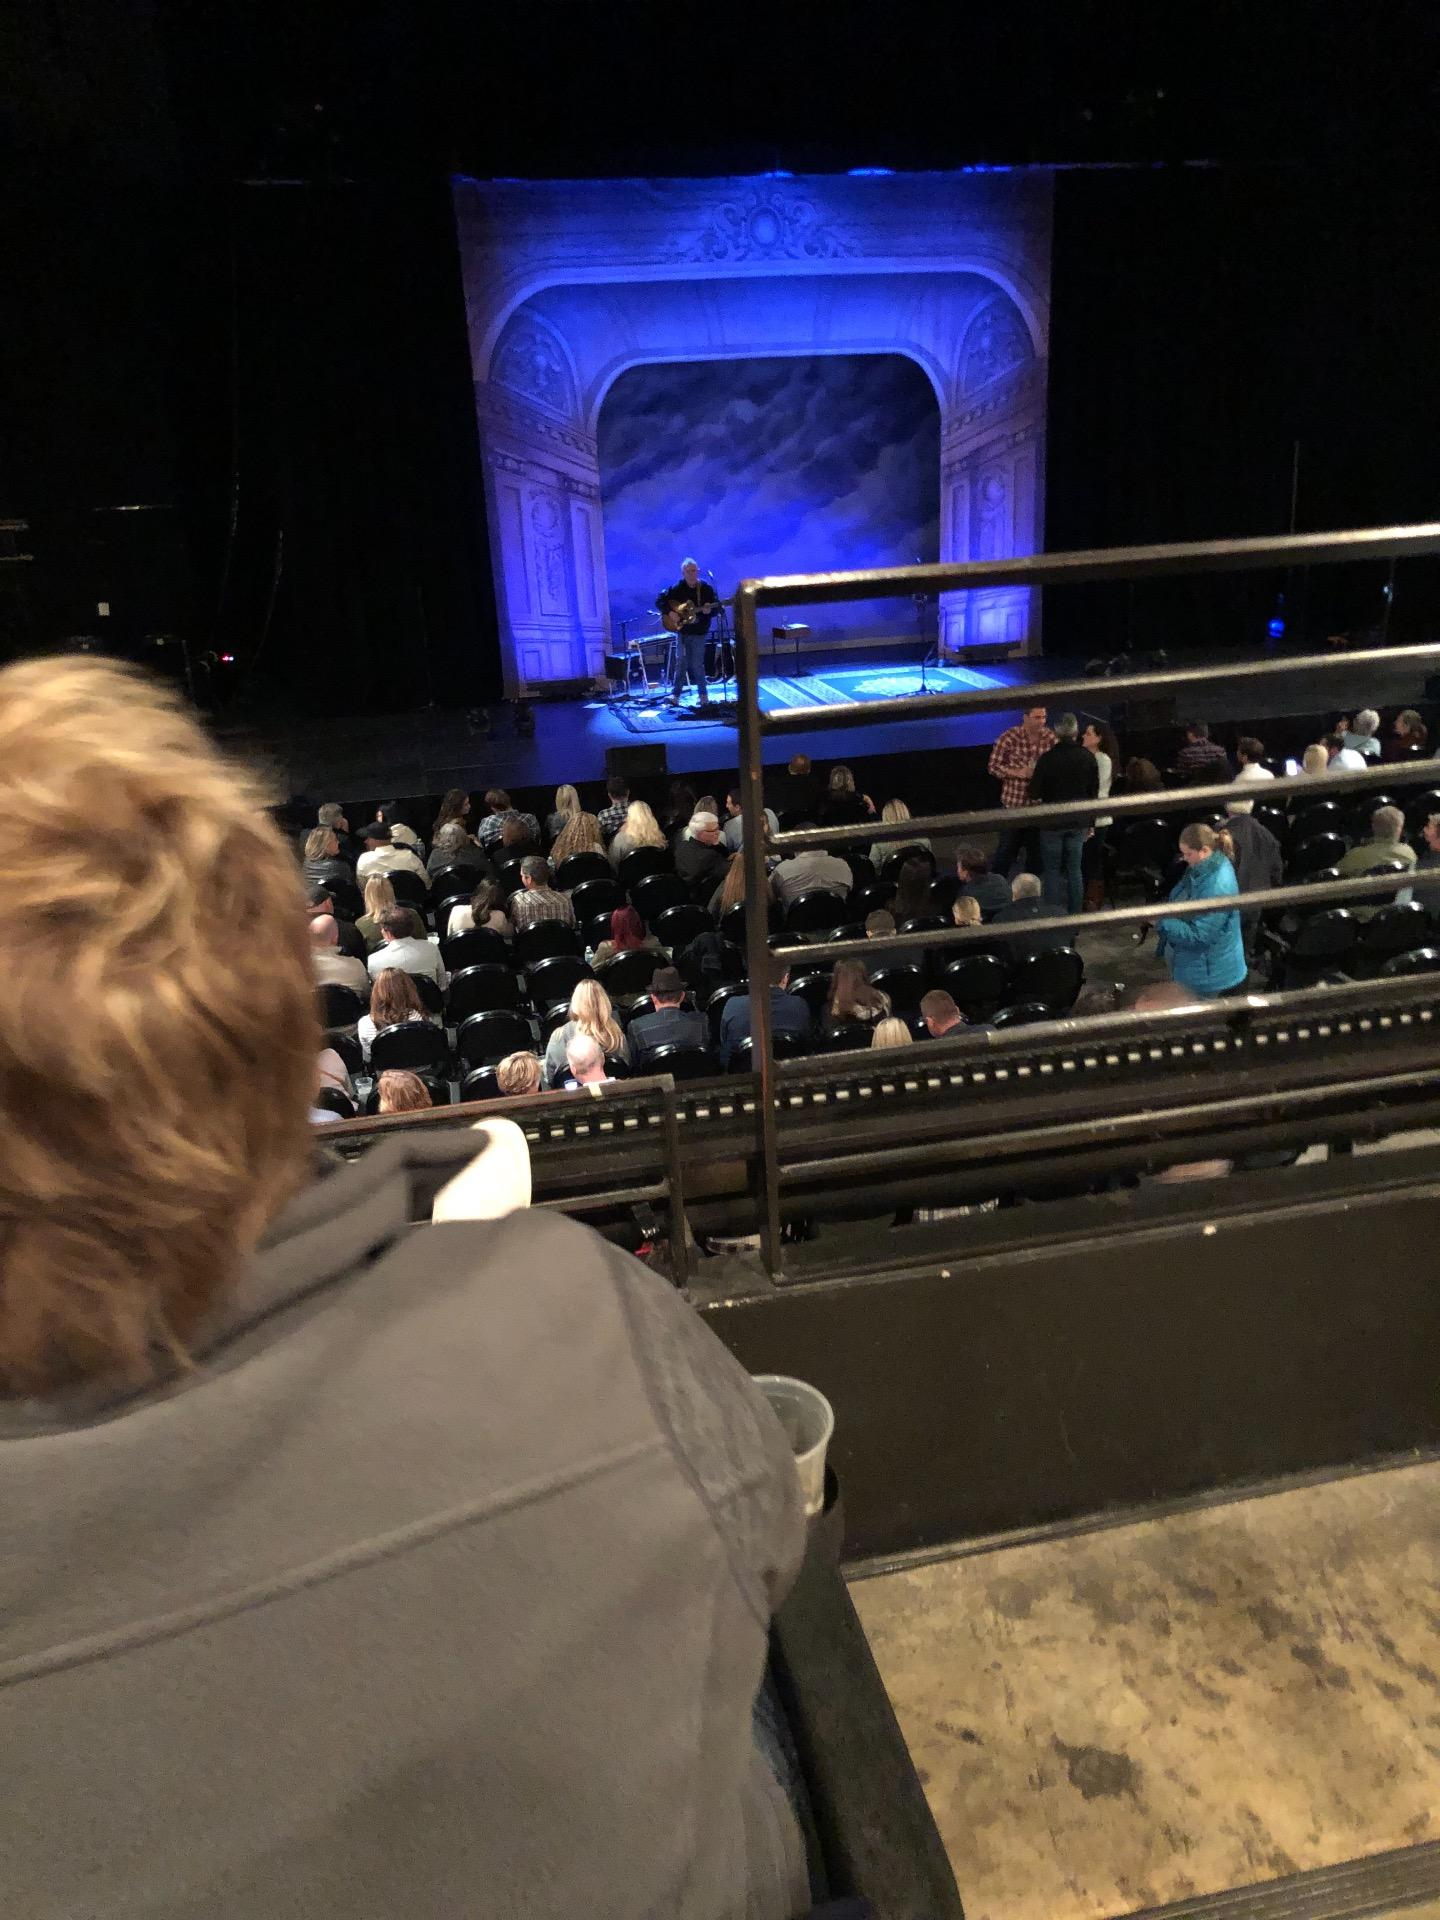 Austin City Limits Live at The Moody Theater Section Mezz 3 Row B Seat 307